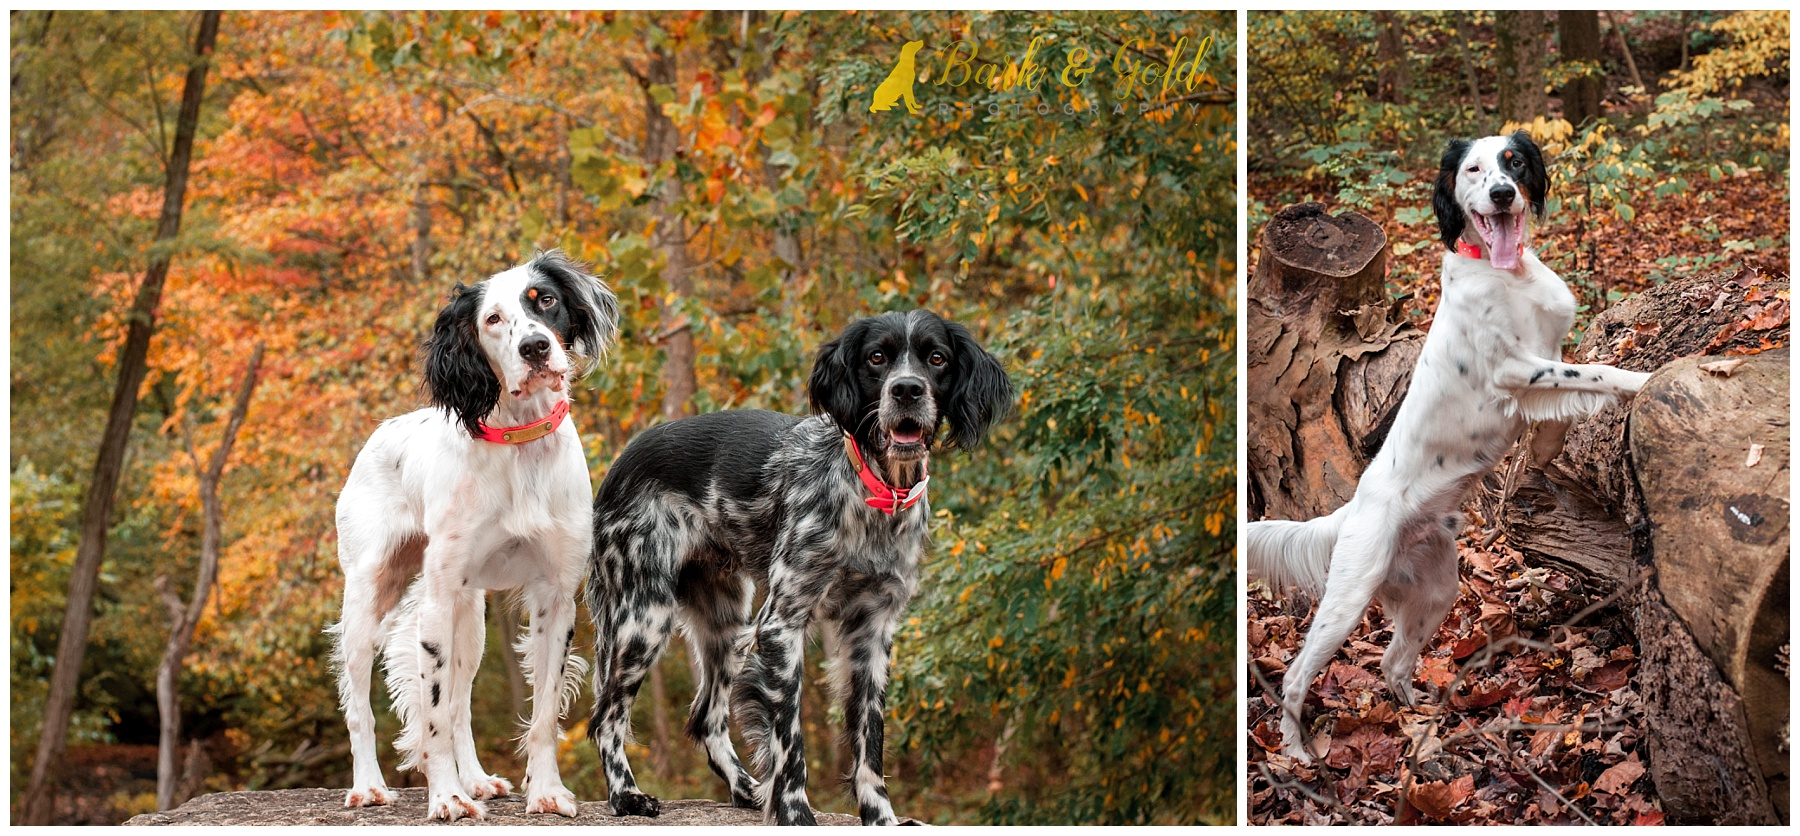 English Setters explore the autumn woods at Brady's Run Park in Beaver County